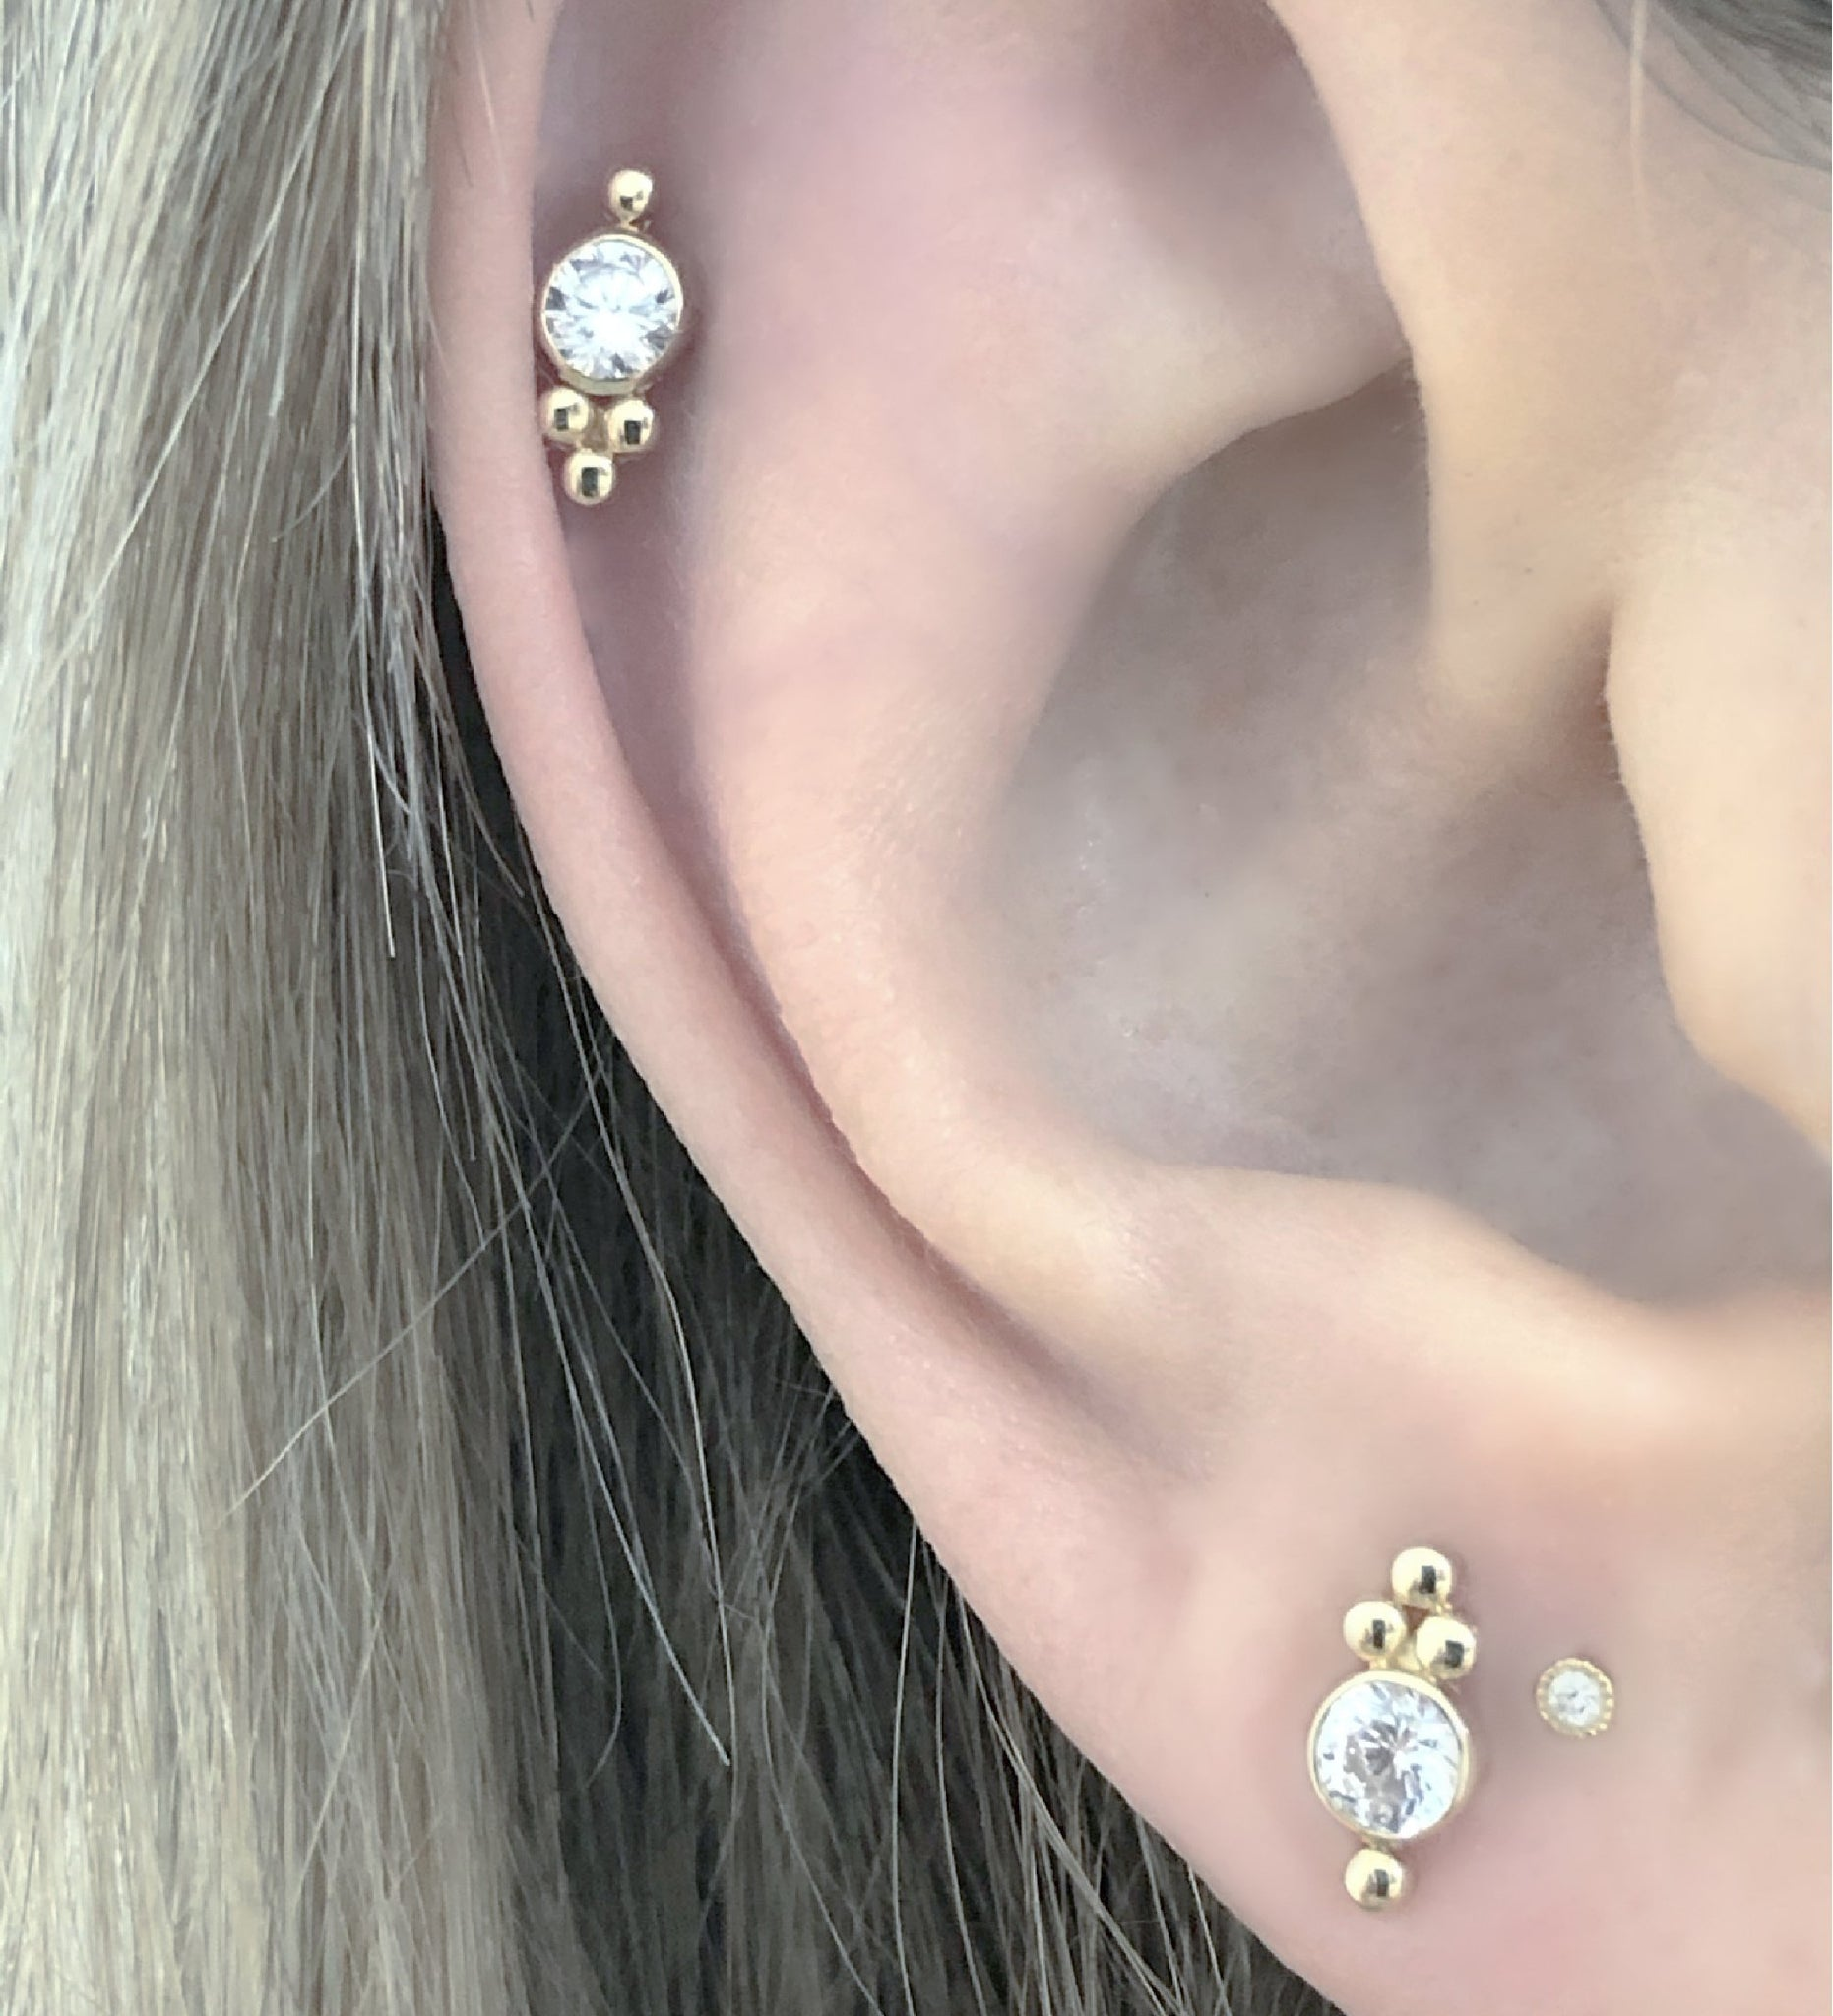 Trinity Stud Earrings Helix | Push Back Earrings | Solid Gold Hypoallergenic Jewelry | Helix, Cartilage | Two of Most Fine Jewelry